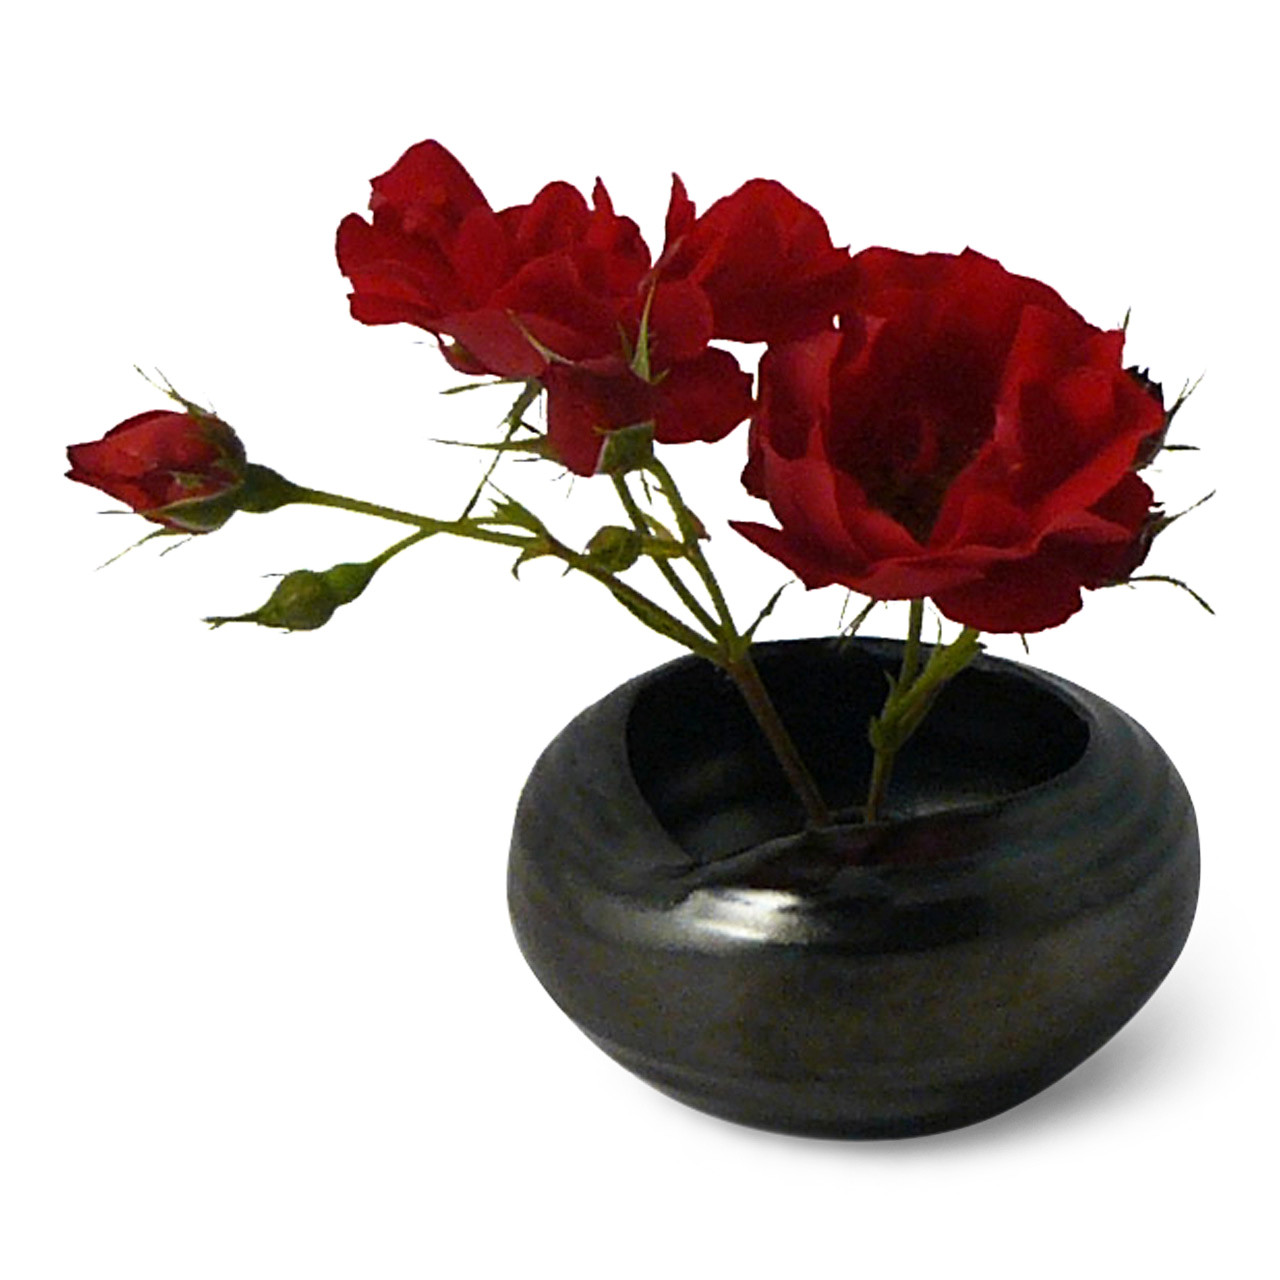 Black Luster Vase with flowers